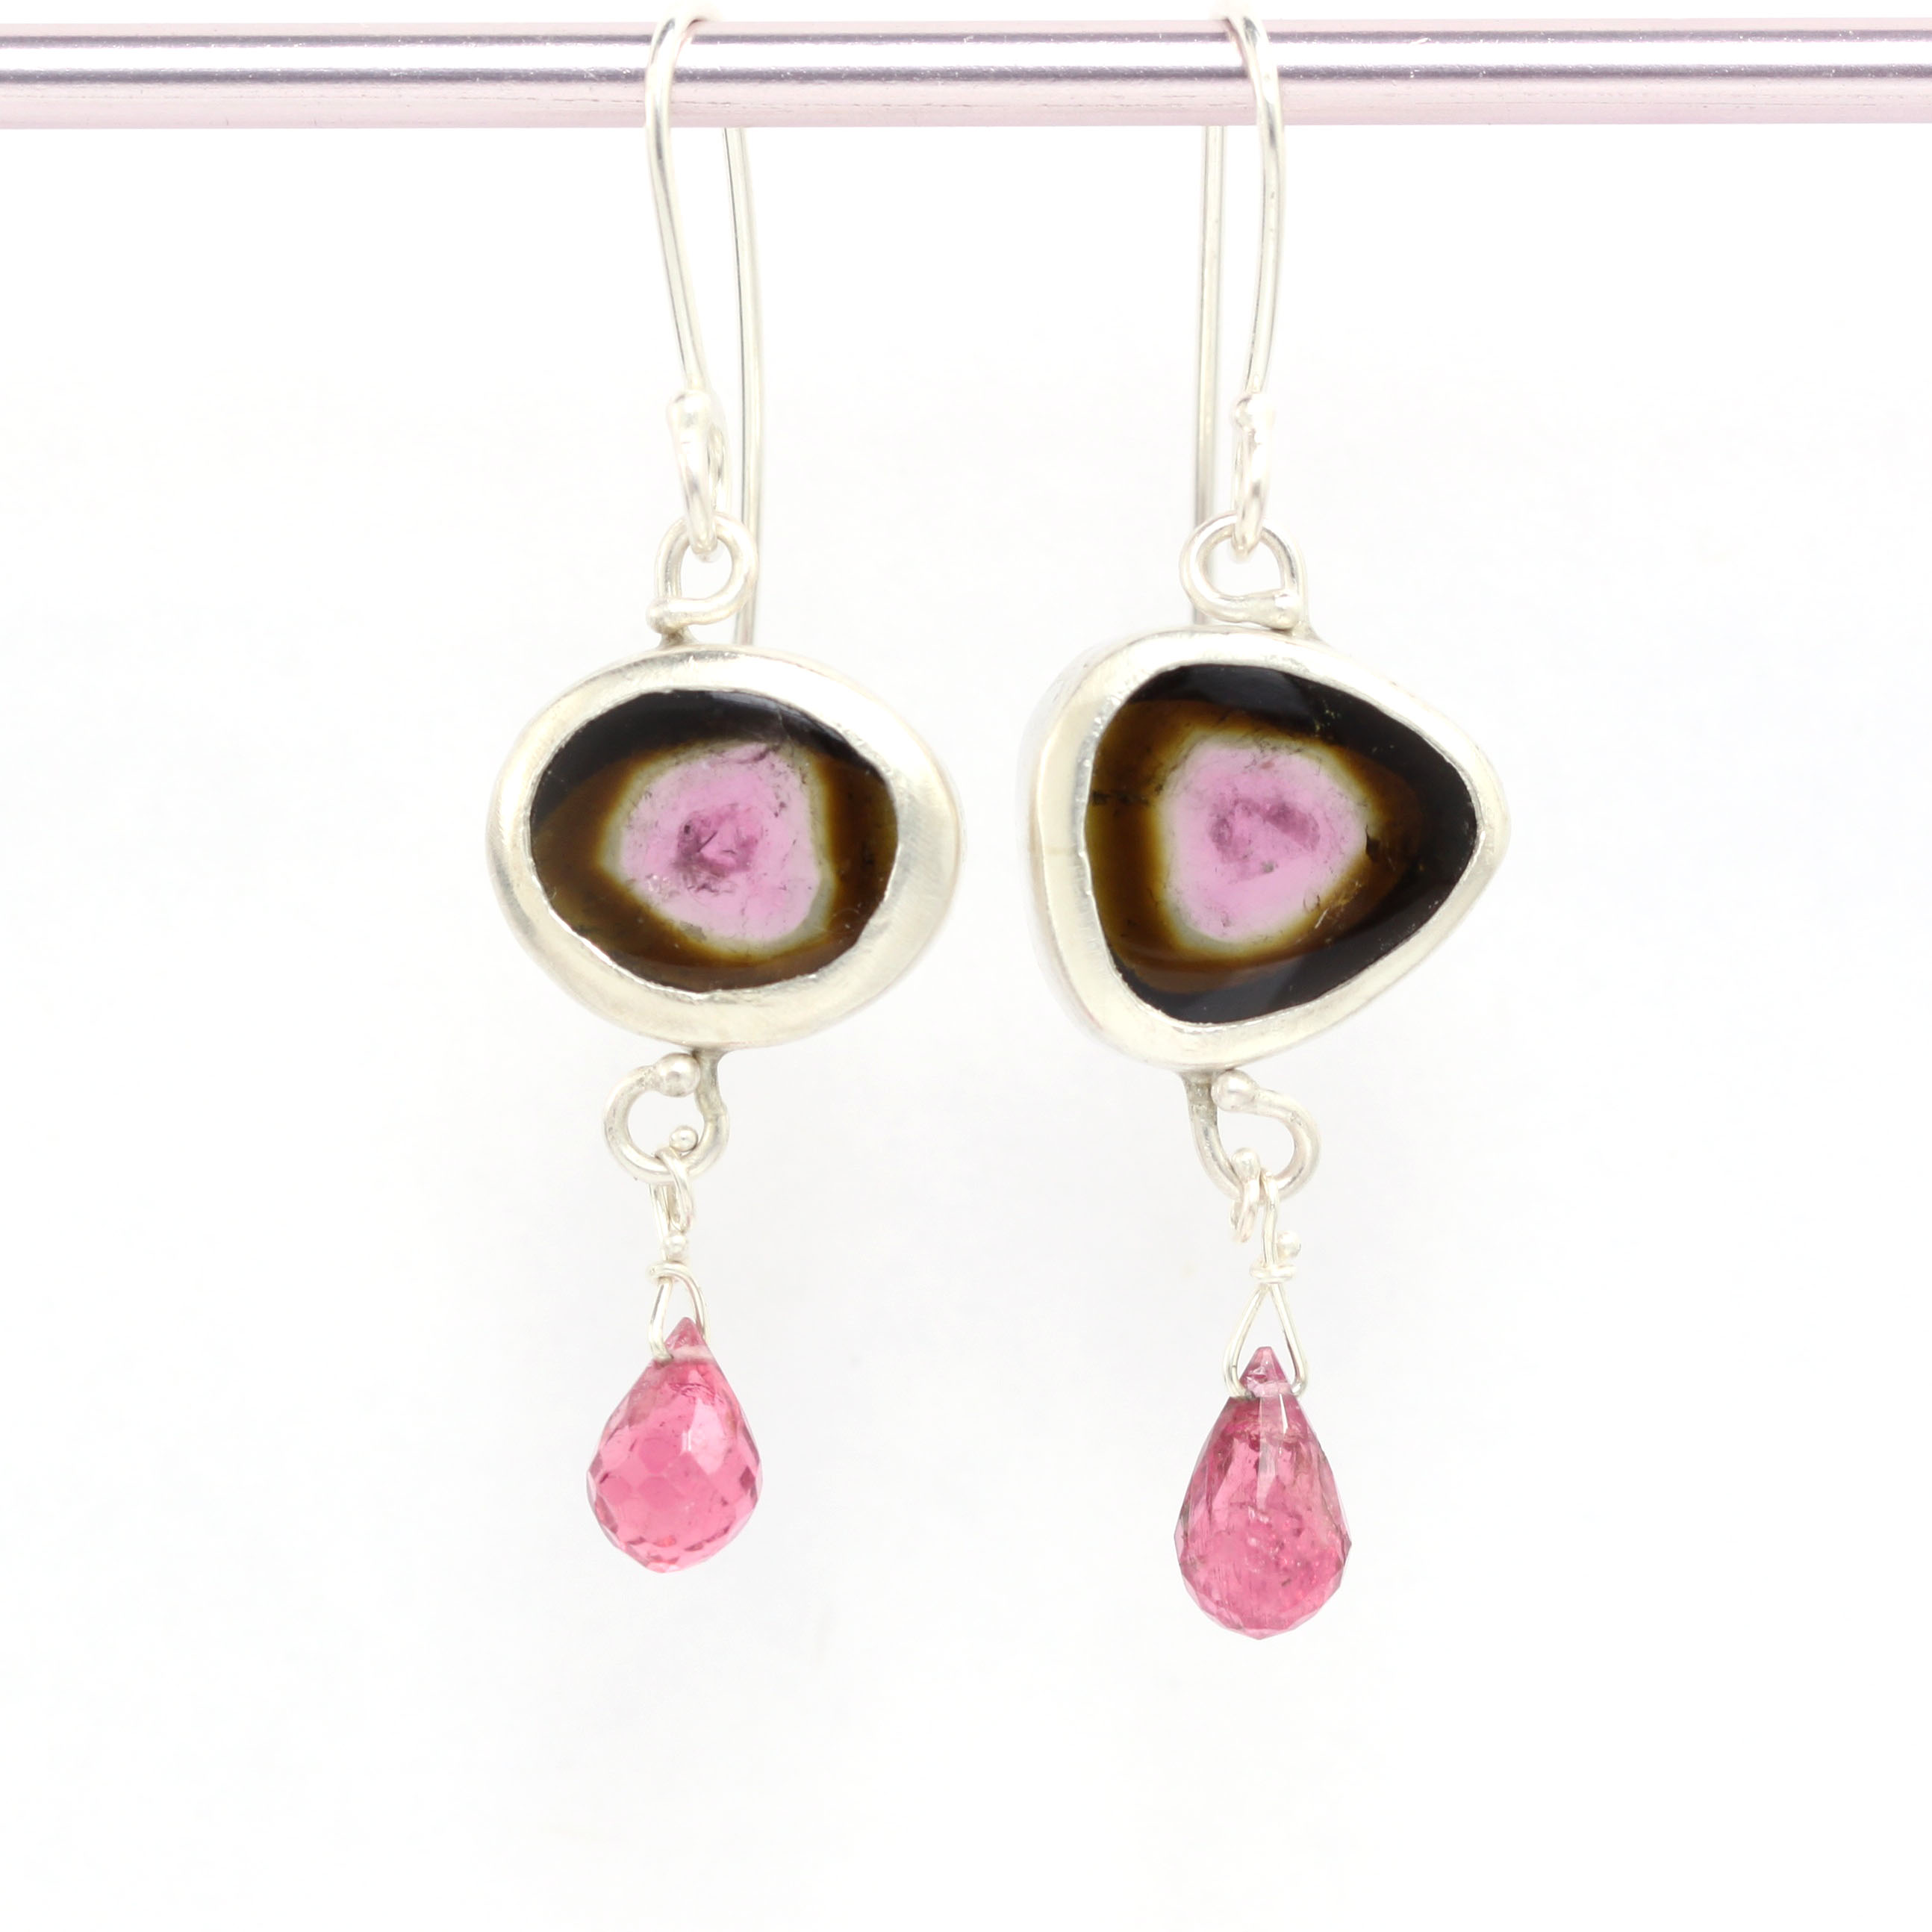 Watermelon Tourmaline Slice Earrings with Pink Tourmaline Briolettes